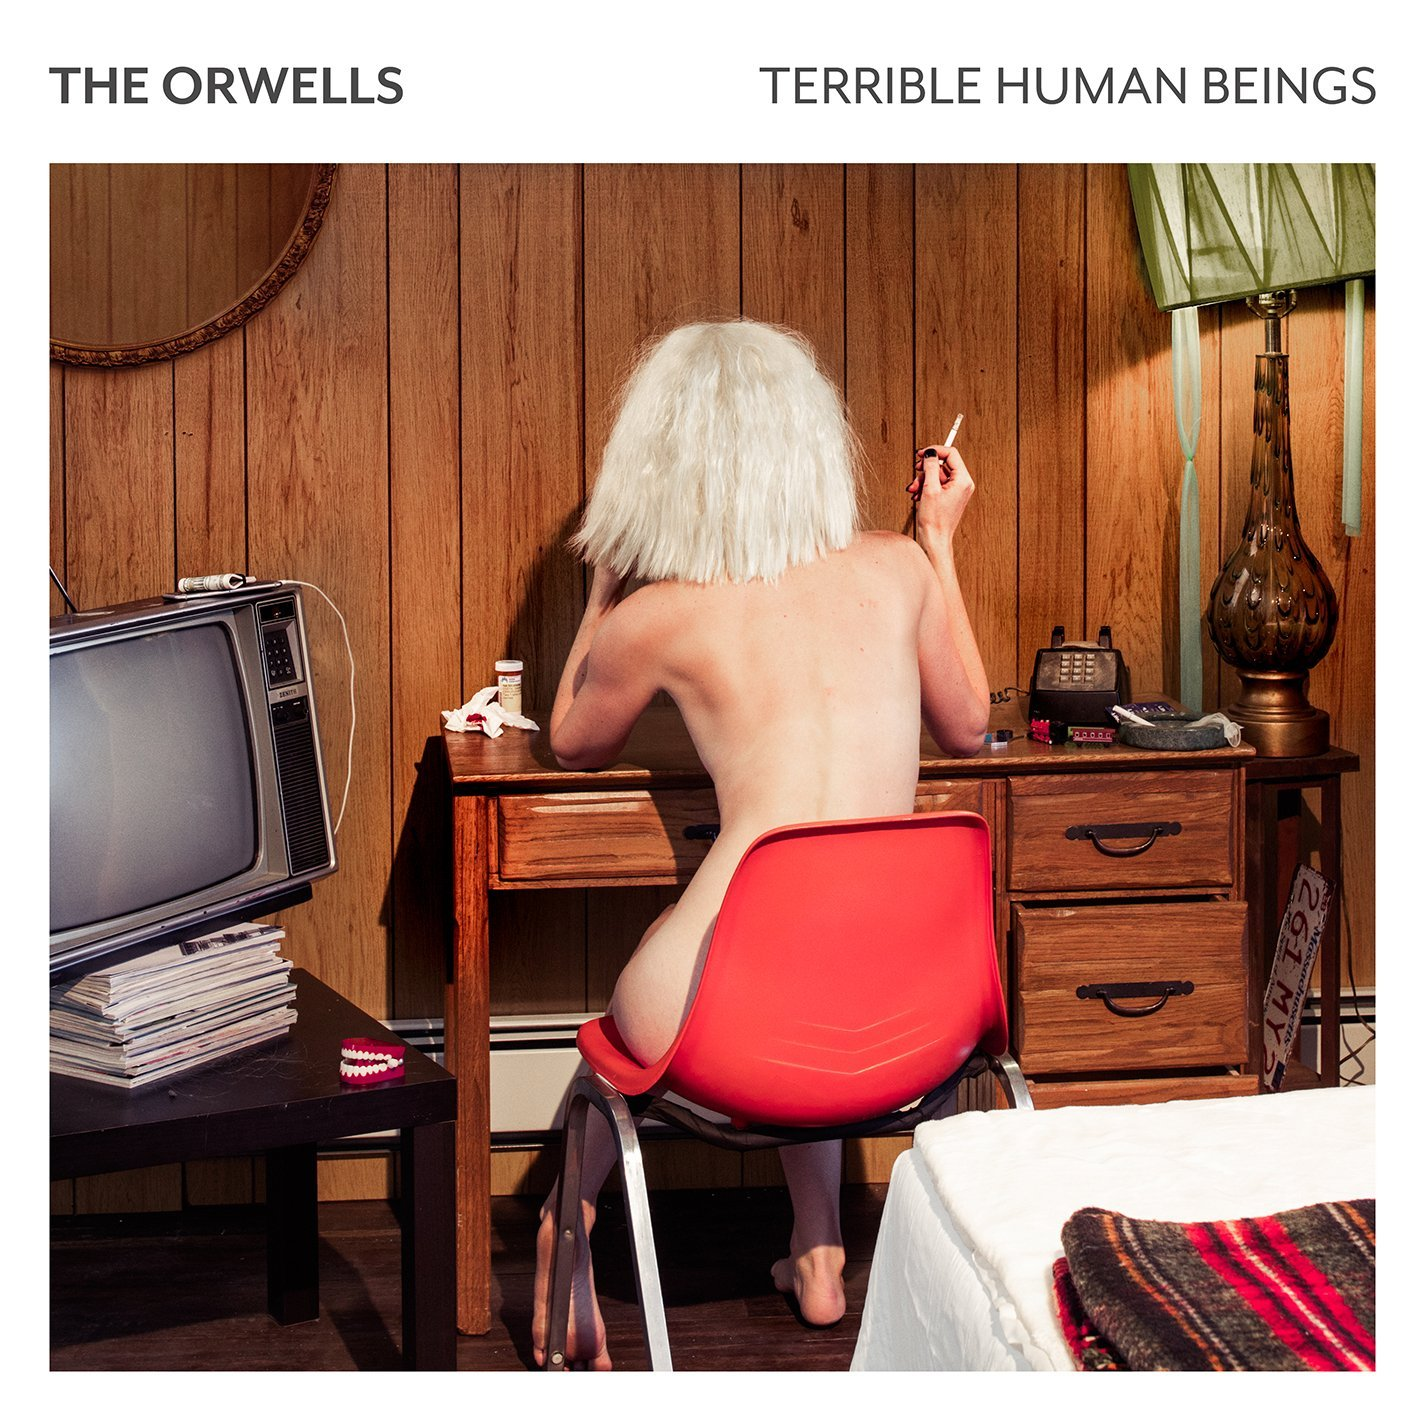 The Orwells - Terrible Human Beings